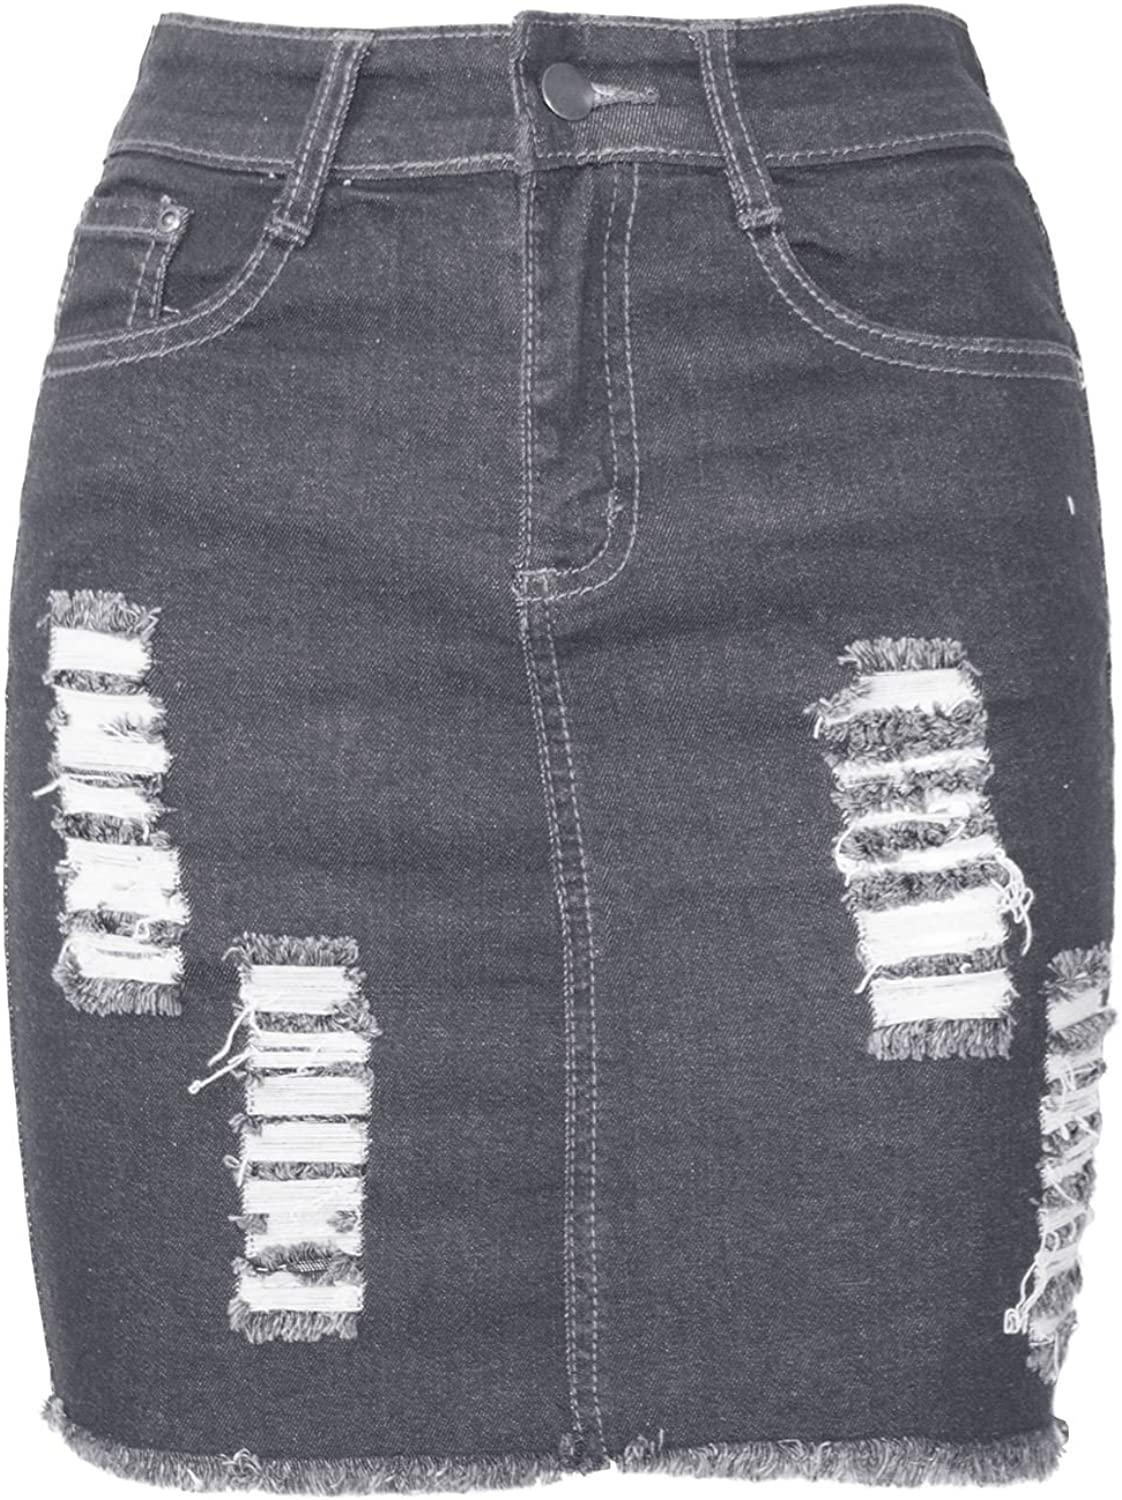 Be Jealous Womens Denim Ripped Distressed Raw Edges Faded Stretchy Bodycon Skirt